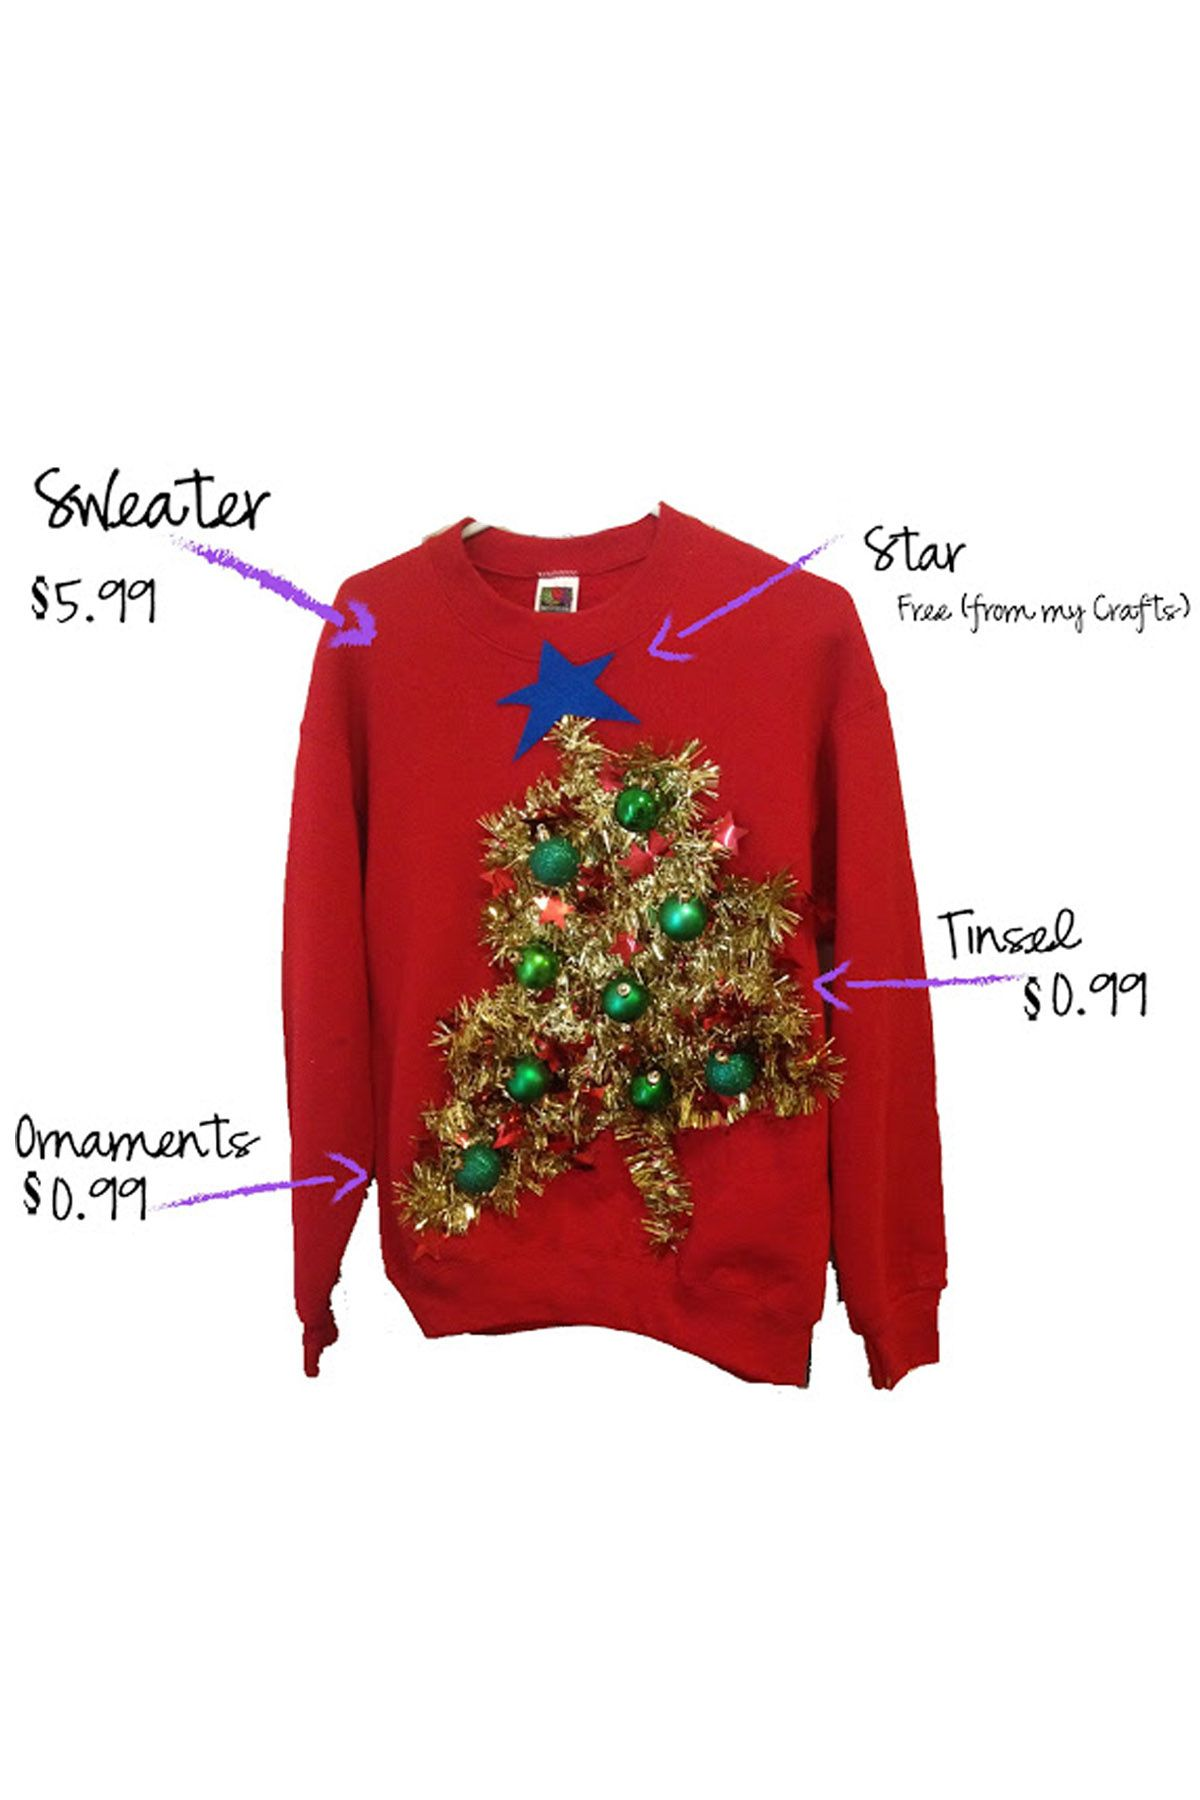 02905f1a5e3 22 Ugly Christmas Sweater Ideas to Buy and DIY - Tacky Christmas Sweaters  for Women